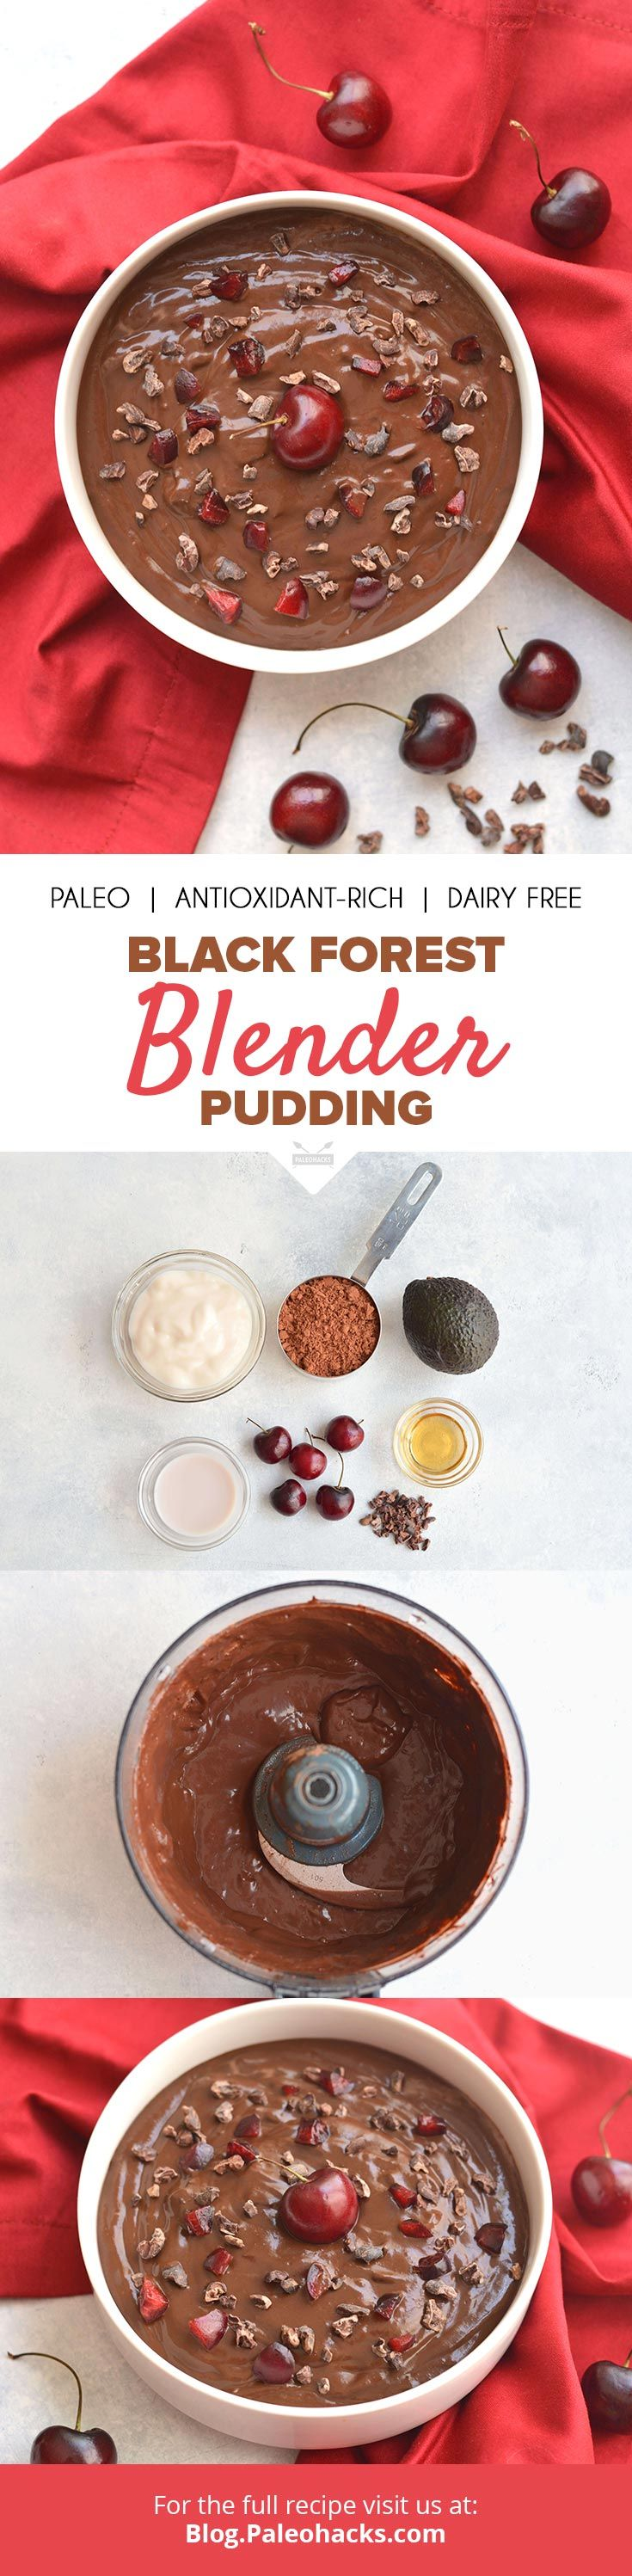 Luscious and creamy, this Black Forest Pudding gets topped with cherries and cacao nibs for a German-inspired dessert. Get the full recipe here: http://paleo.co/blackforestpudding